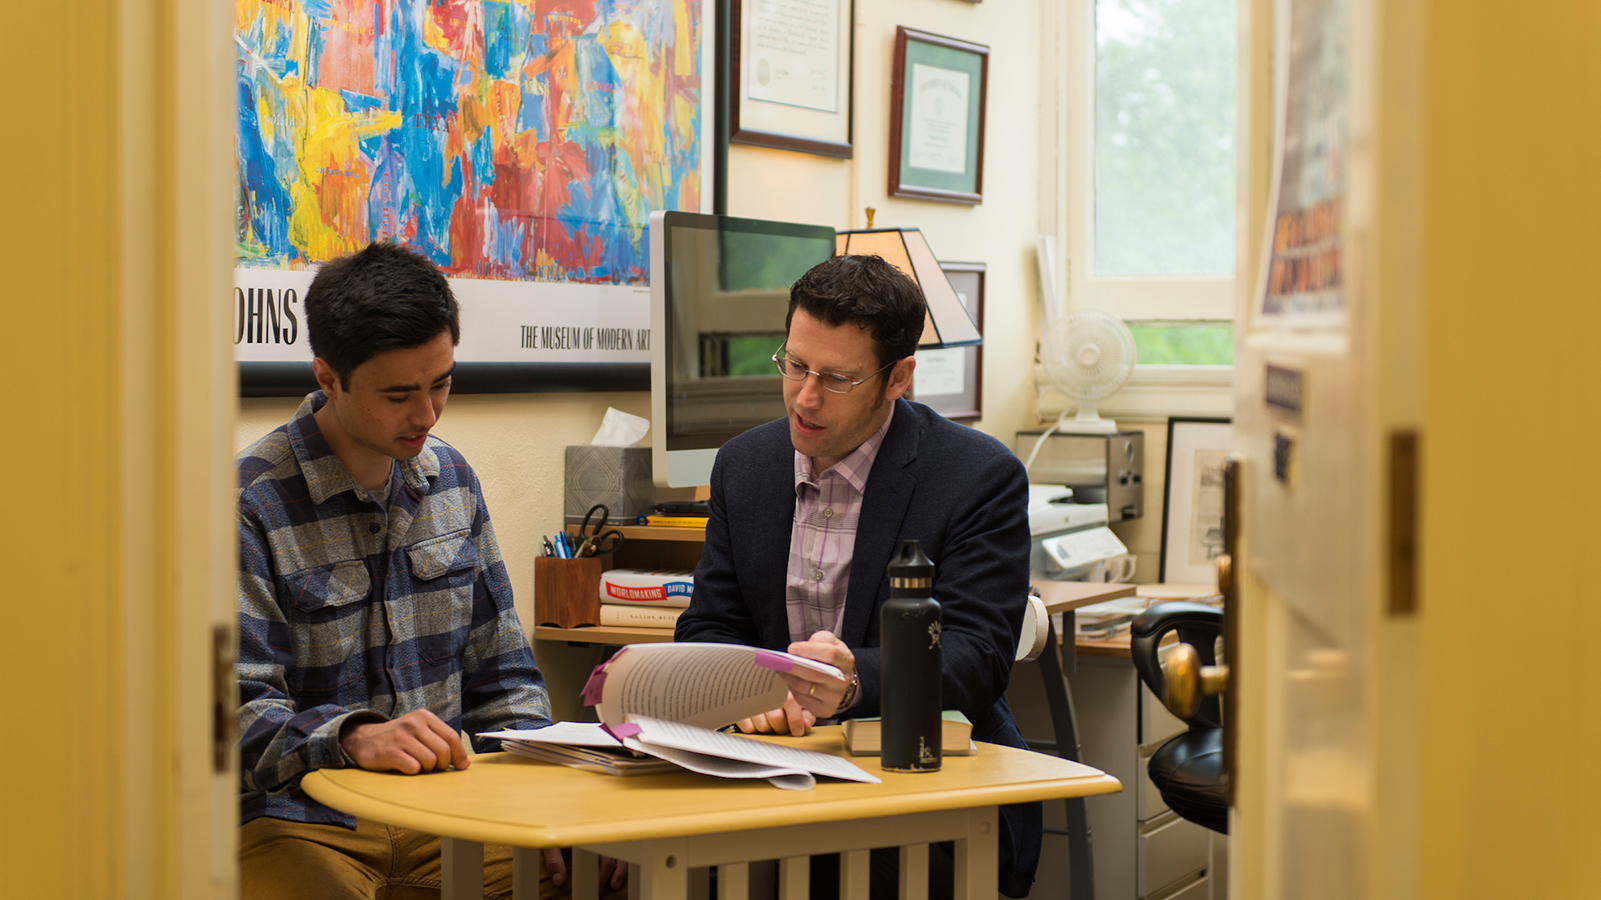 Advisor consulting with a student in their office